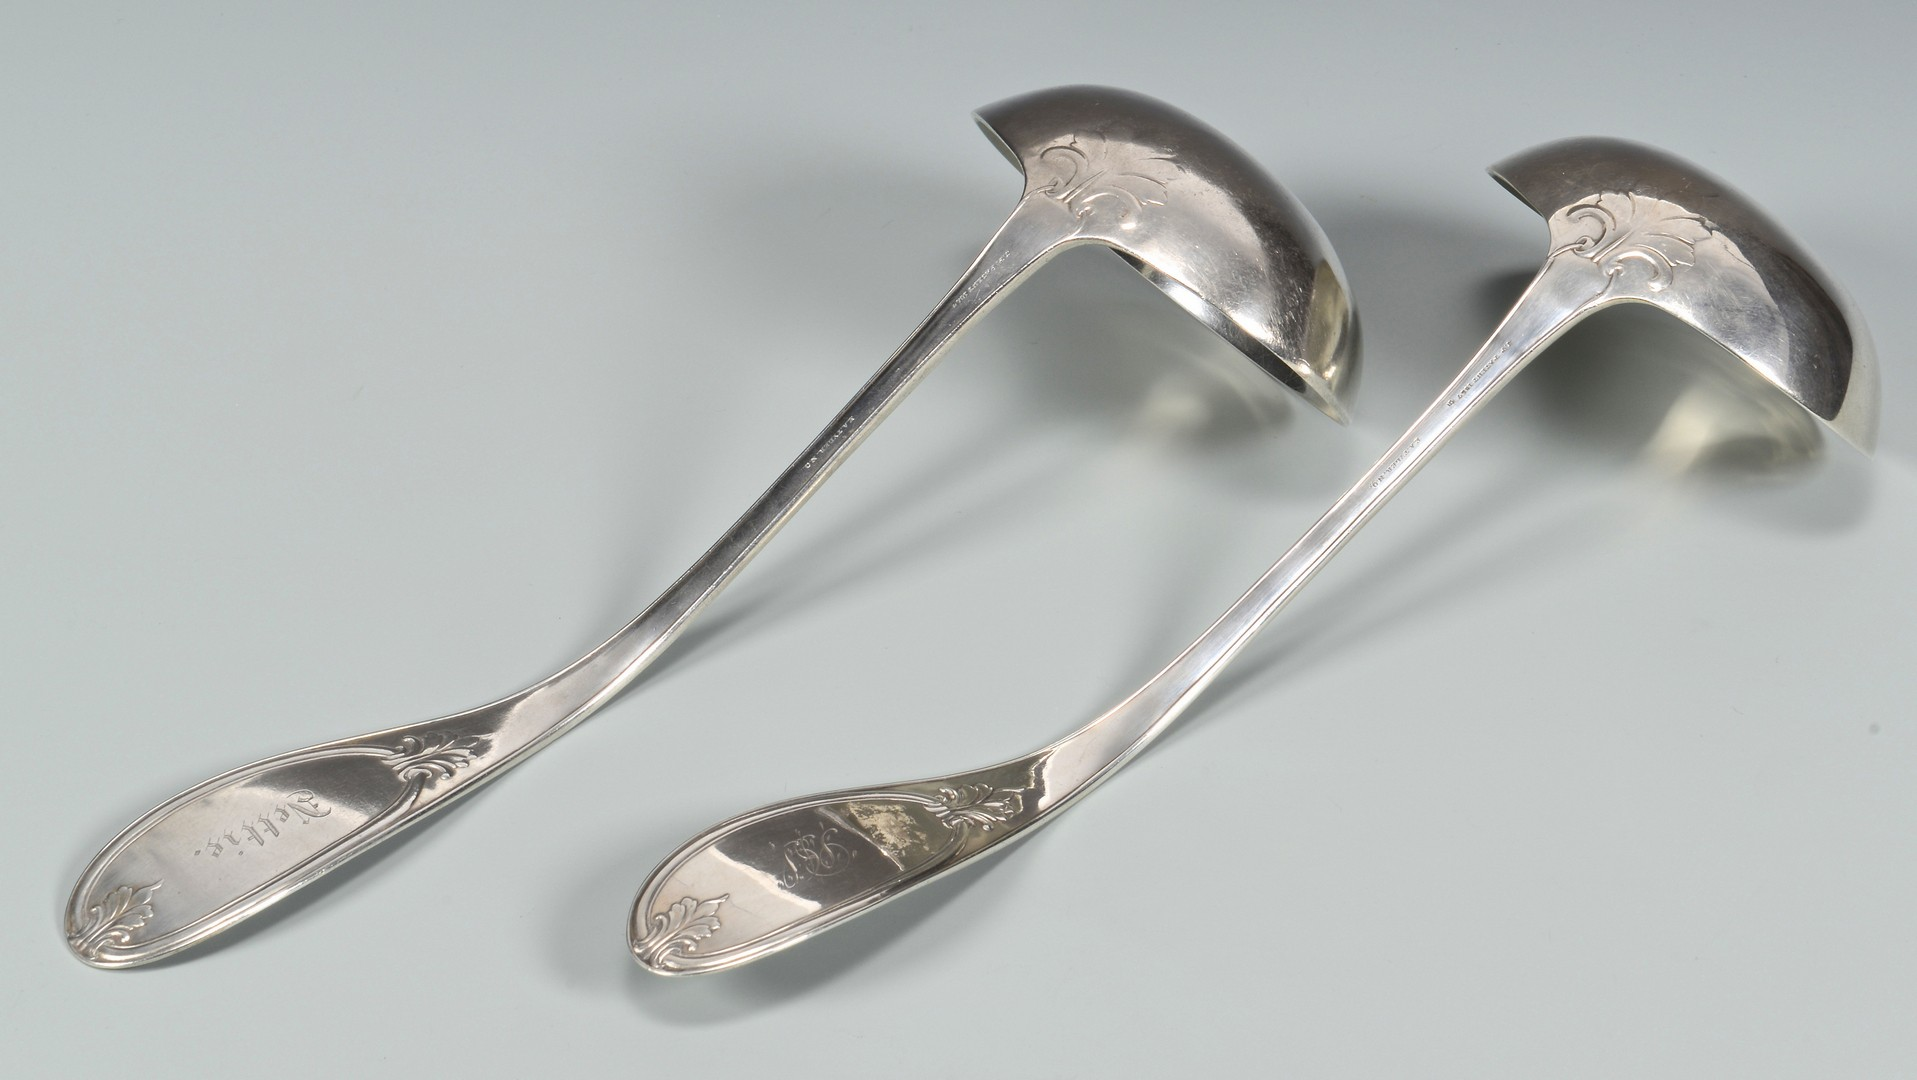 Lot 87: 2 E.A. Tyler Coin Silver Ladles, Empire pattern